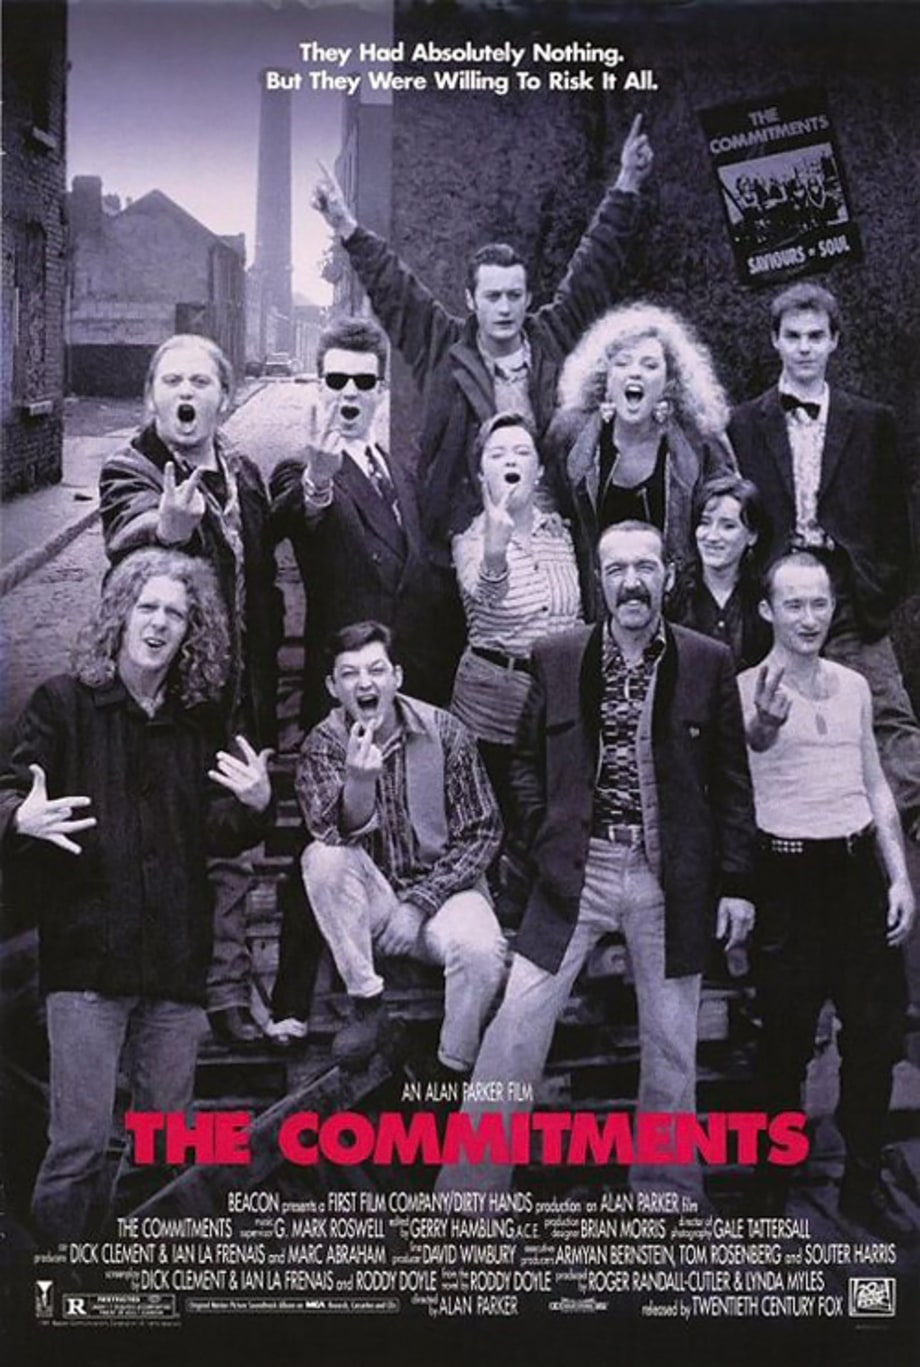 8. 'The Commitments'